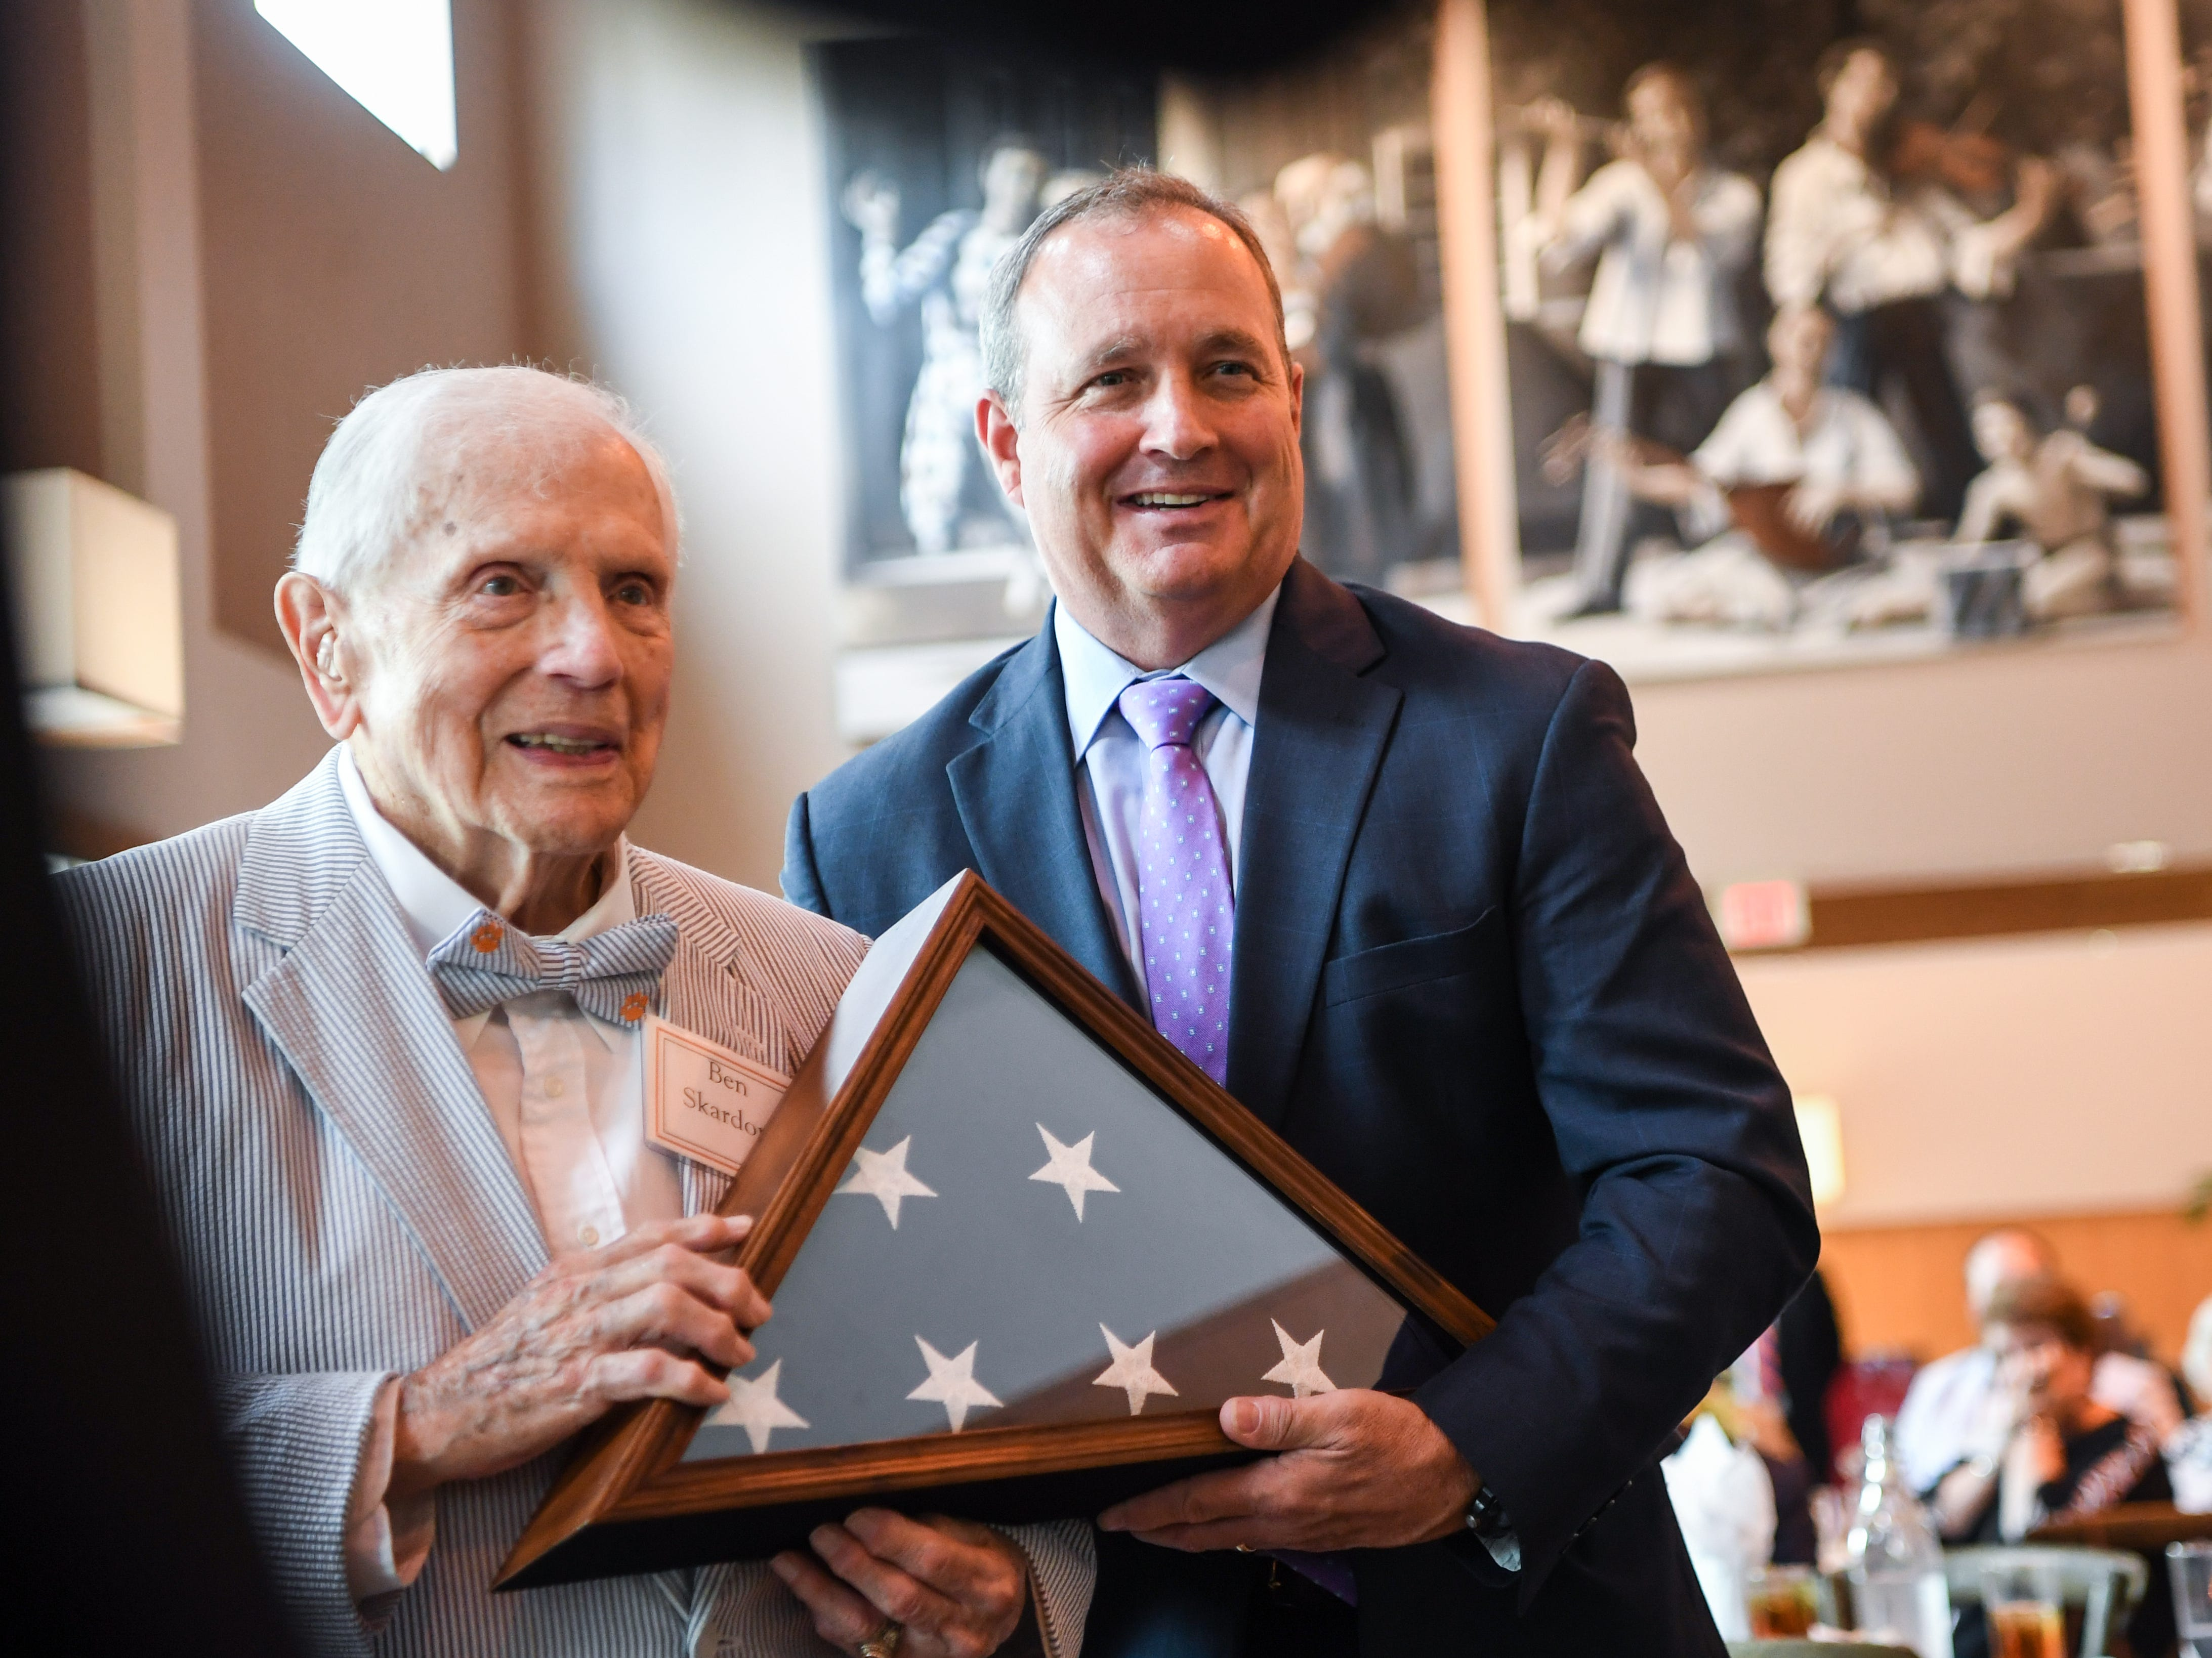 In 2017, Clemson graduate Col. Ben Skardon, left, is presented a a flag flown over the U.S. Capitol by U.S. Rep. Jeff Duncan, right, during his 100th birthday celebration at the Brooks Center in Clemson.